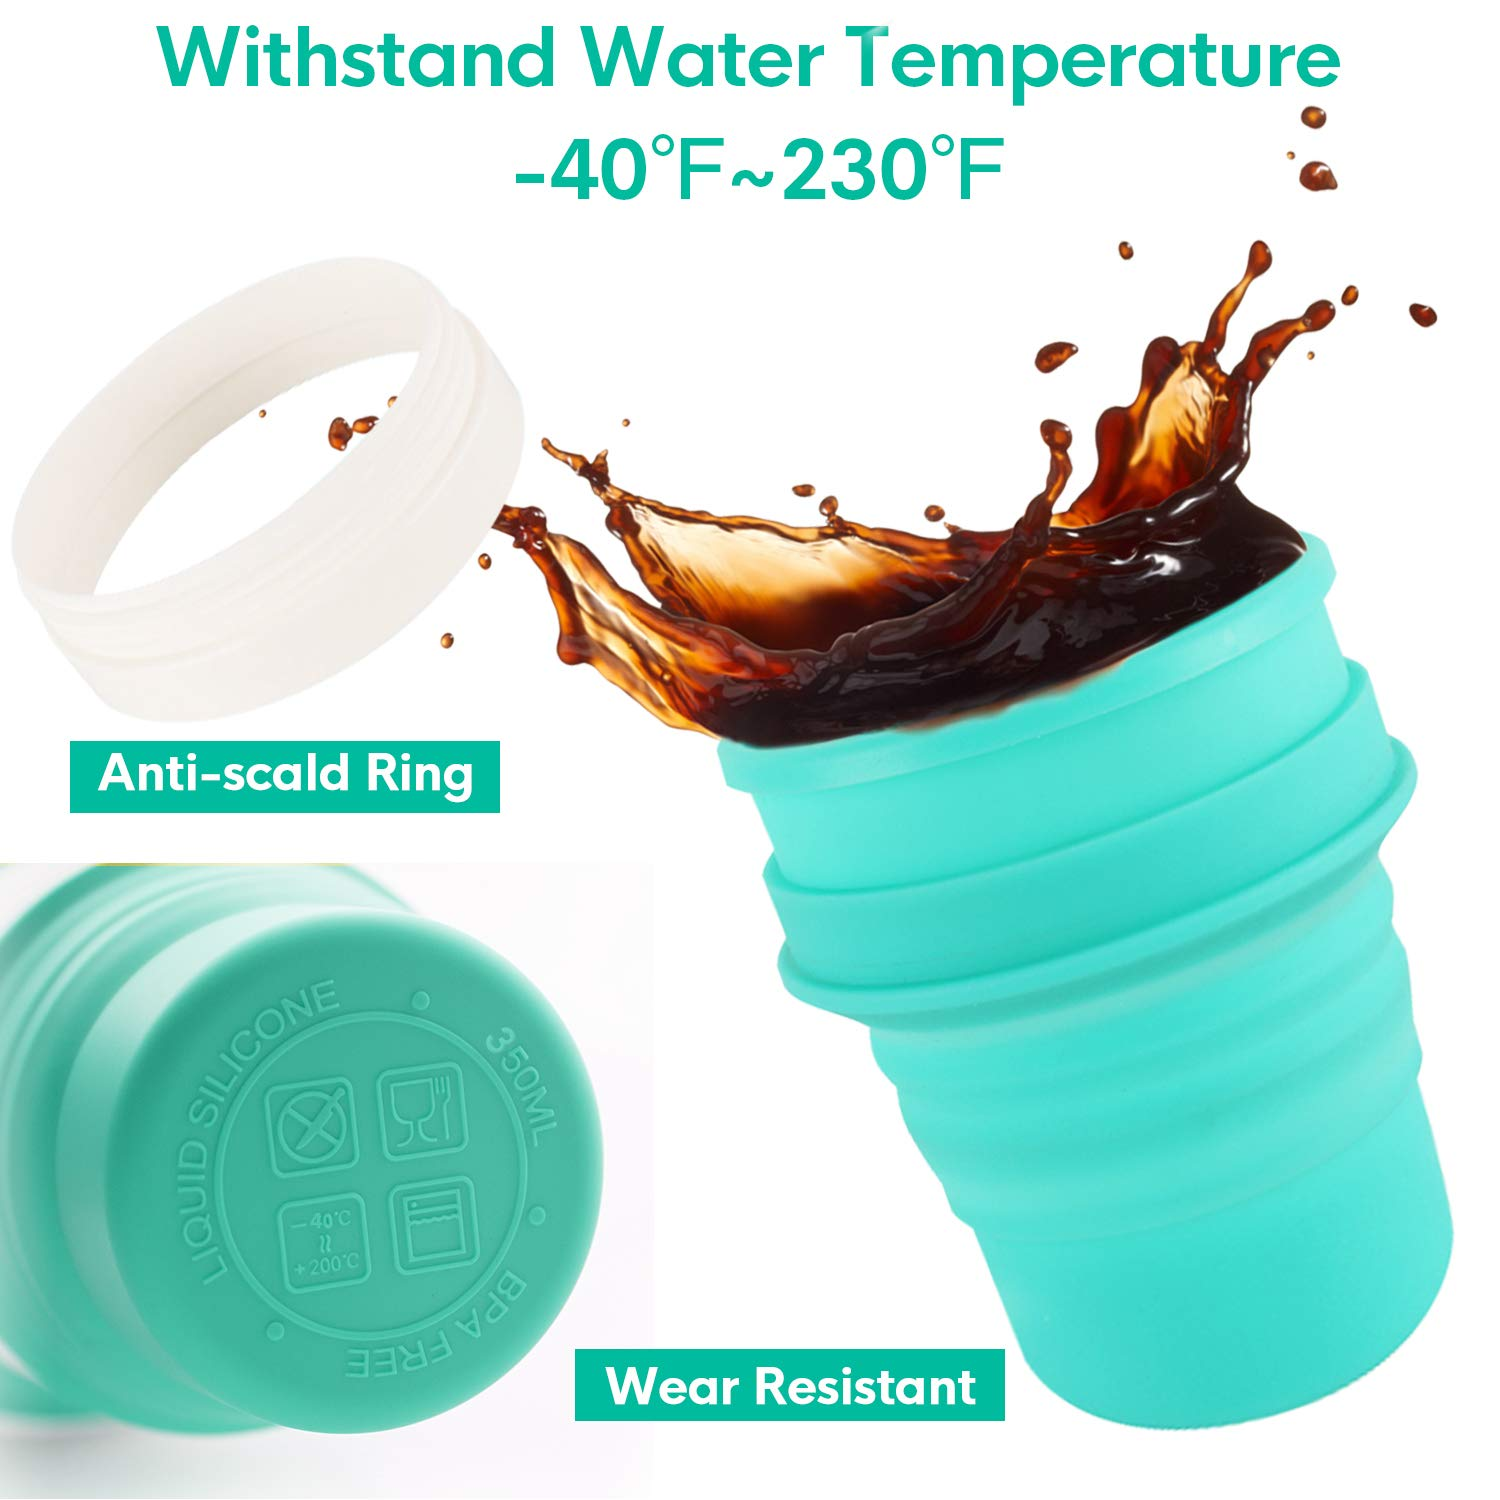 Idealife Collapsible Silicone Travel Cup Foldable Cup with Straw and Lid Folding Cup for Camping Travel Outdoor Office BPA Free 350ml/11.8oz (Green)